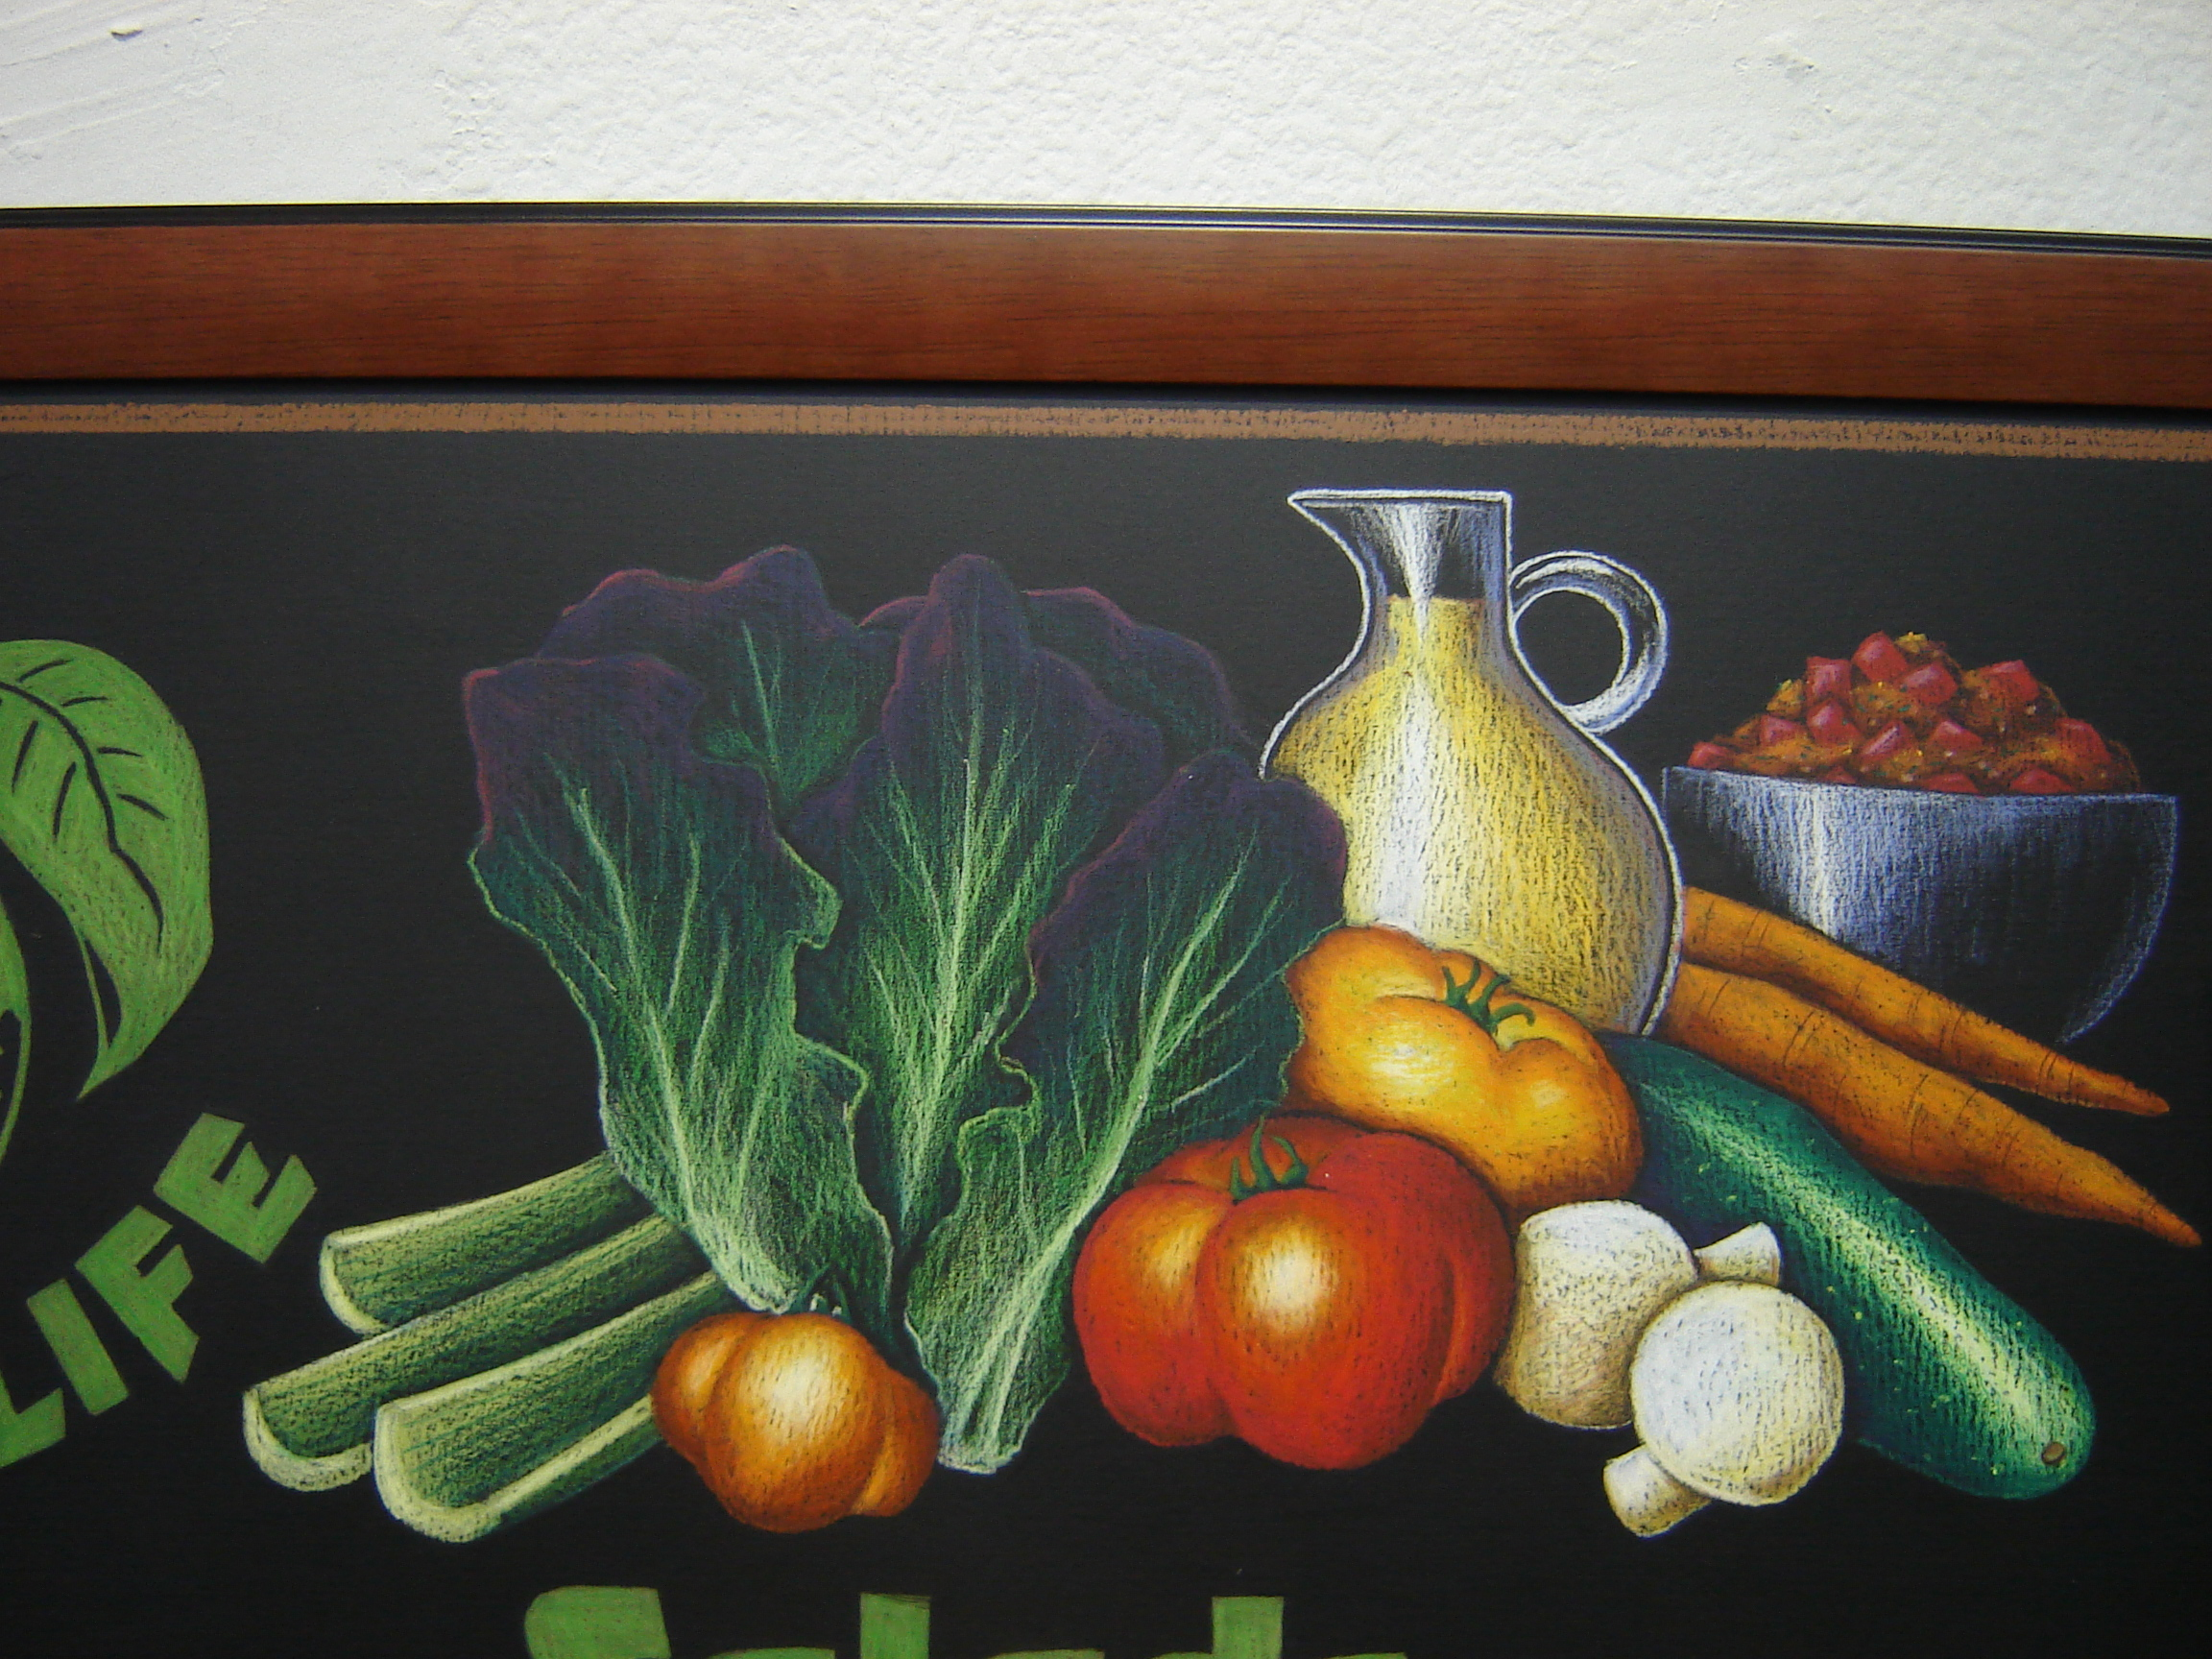 jasmine nora jones chalkboards